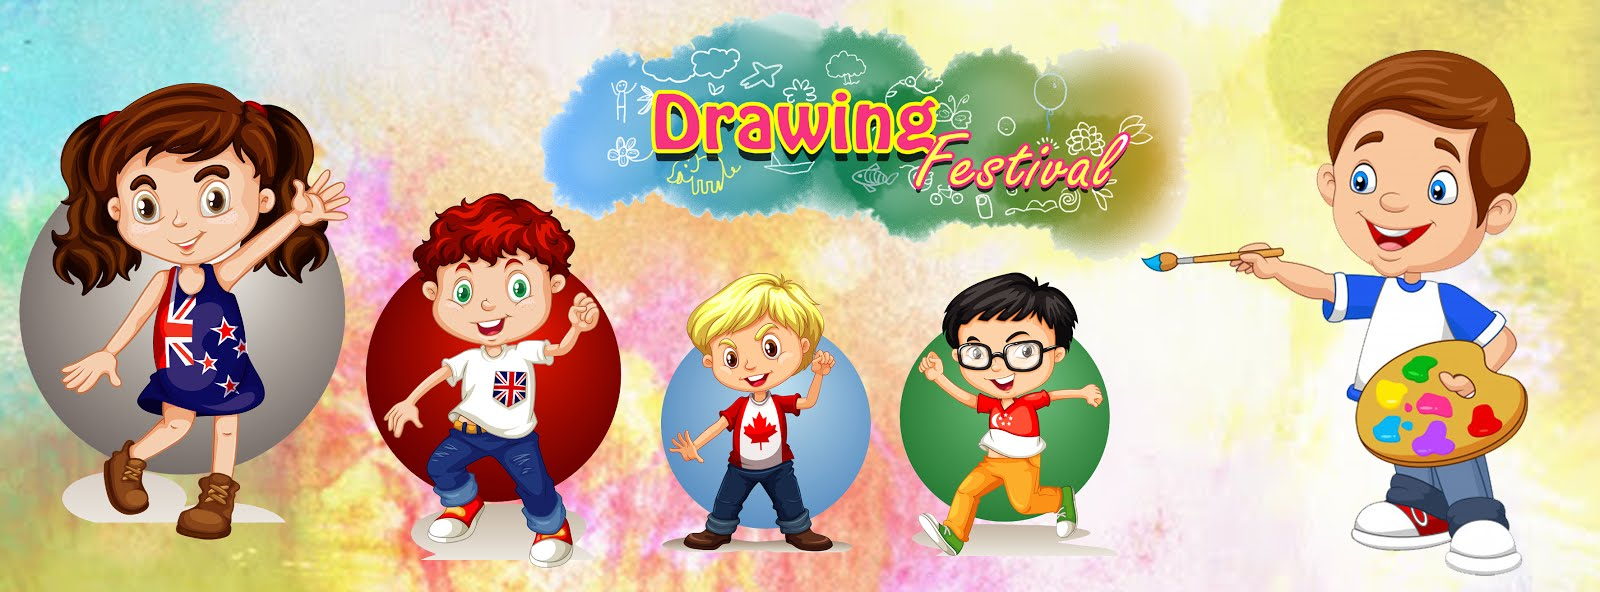 Drawing Festival